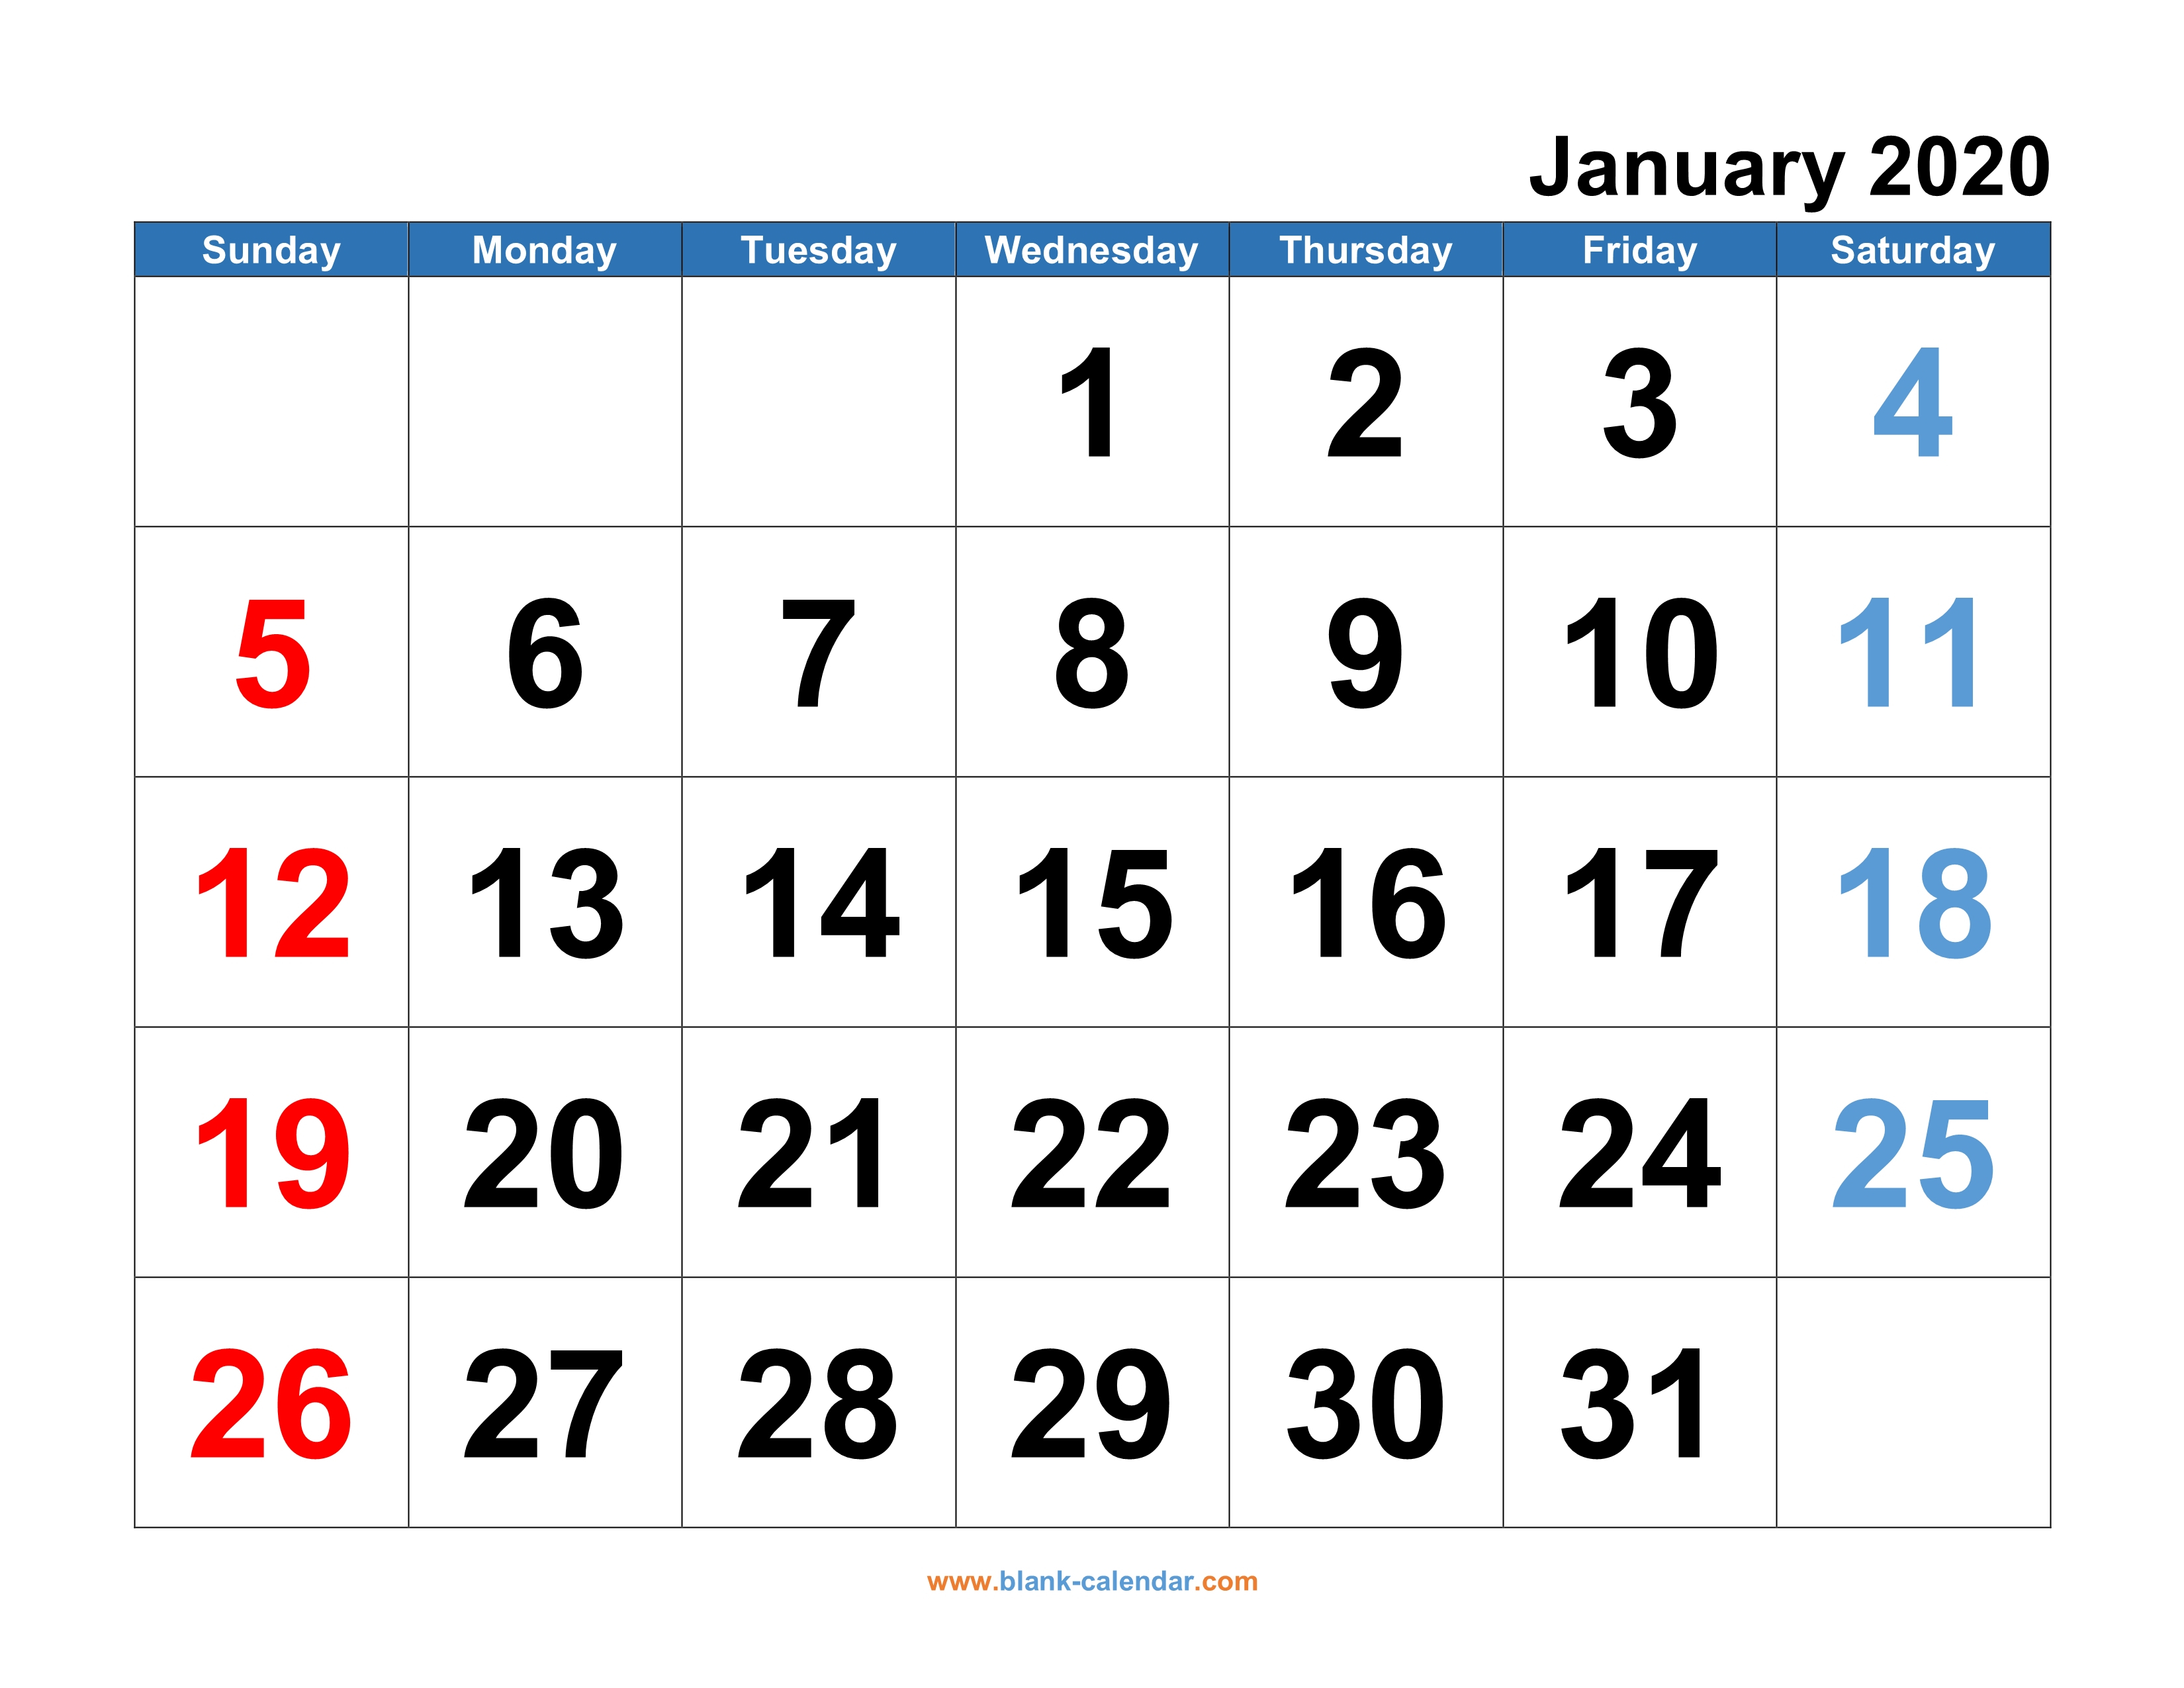 Monthly Calendar 2020 | Free Download, Editable And Printable for Large Print 2020 Calendar To Print Free